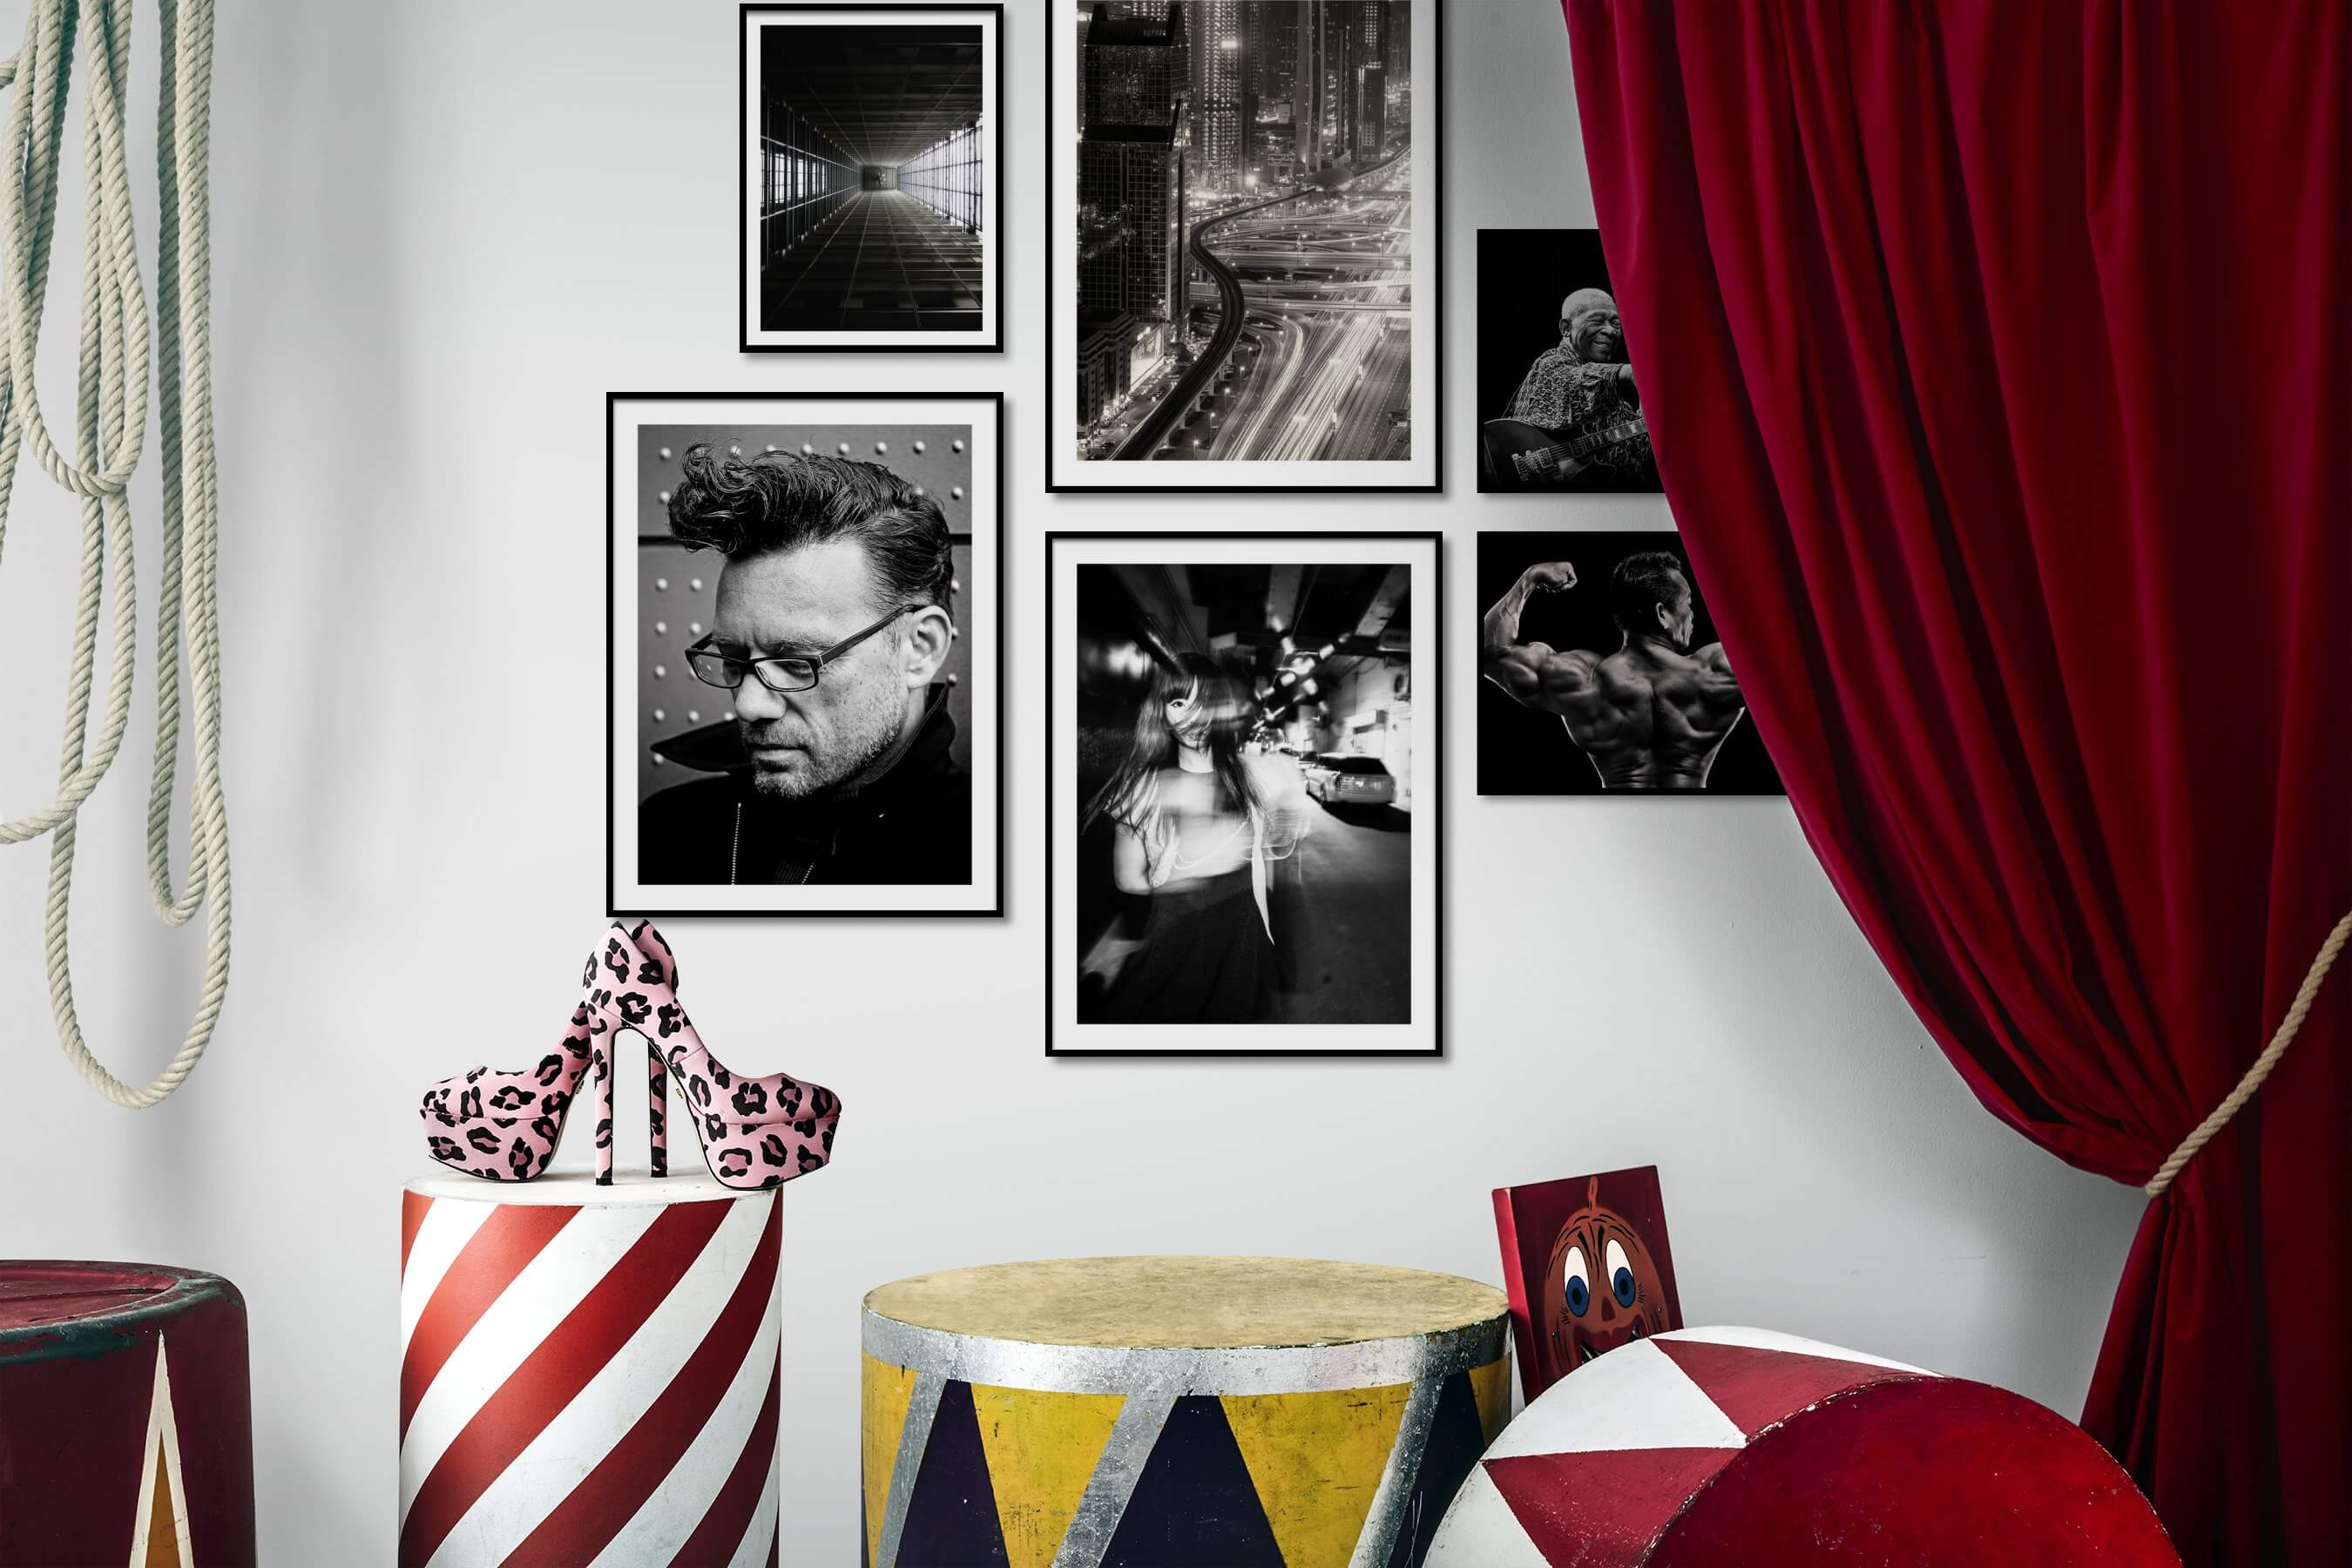 Gallery wall idea with six framed pictures arranged on a wall depicting For the Moderate, Black & White, City Life, Fashion & Beauty, Dark Tones, For the Minimalist, and Americana